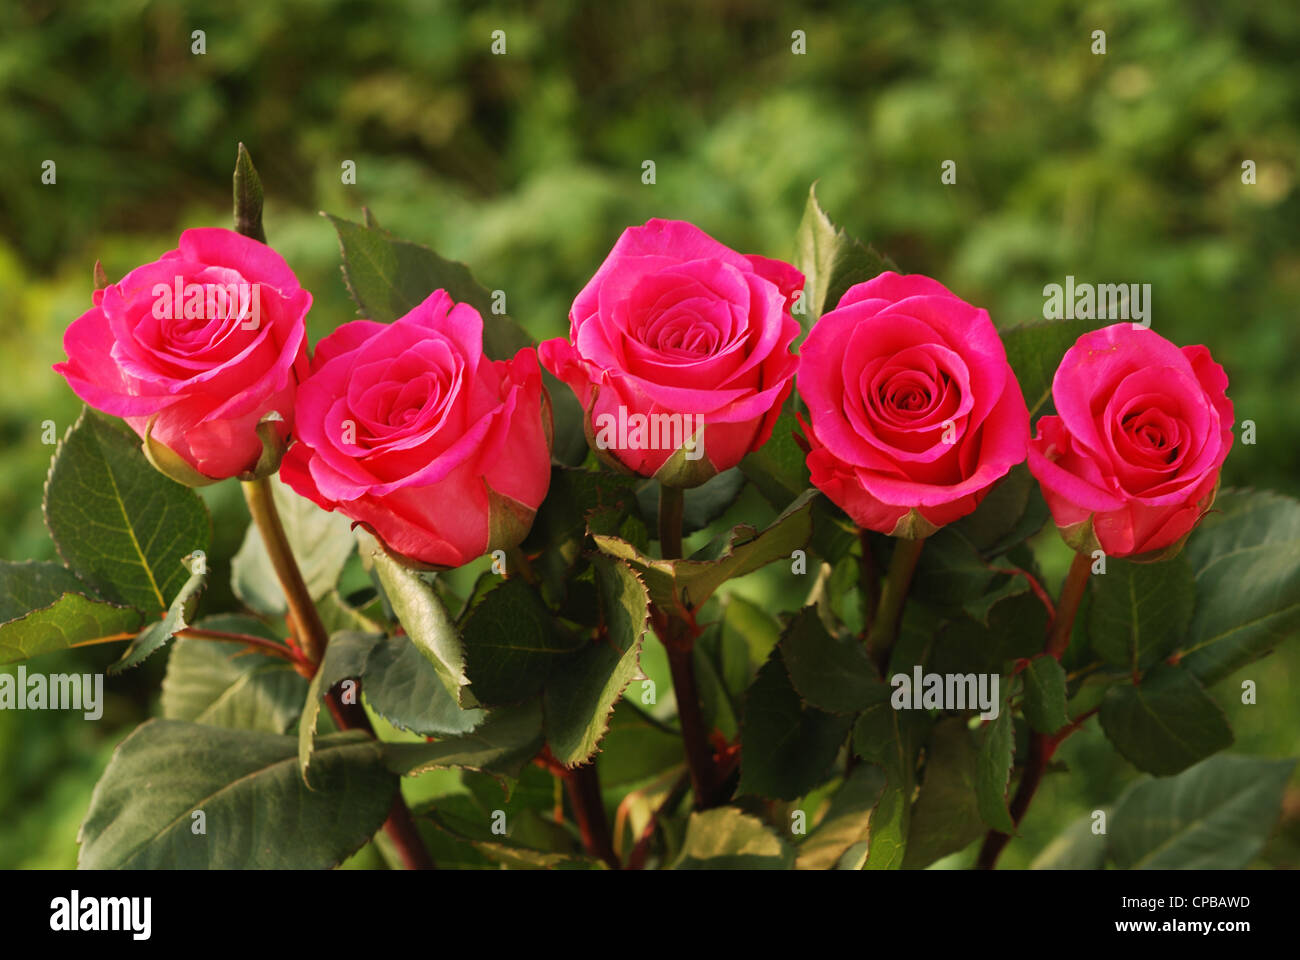 five scarlet beauty roses against green background - Stock Image